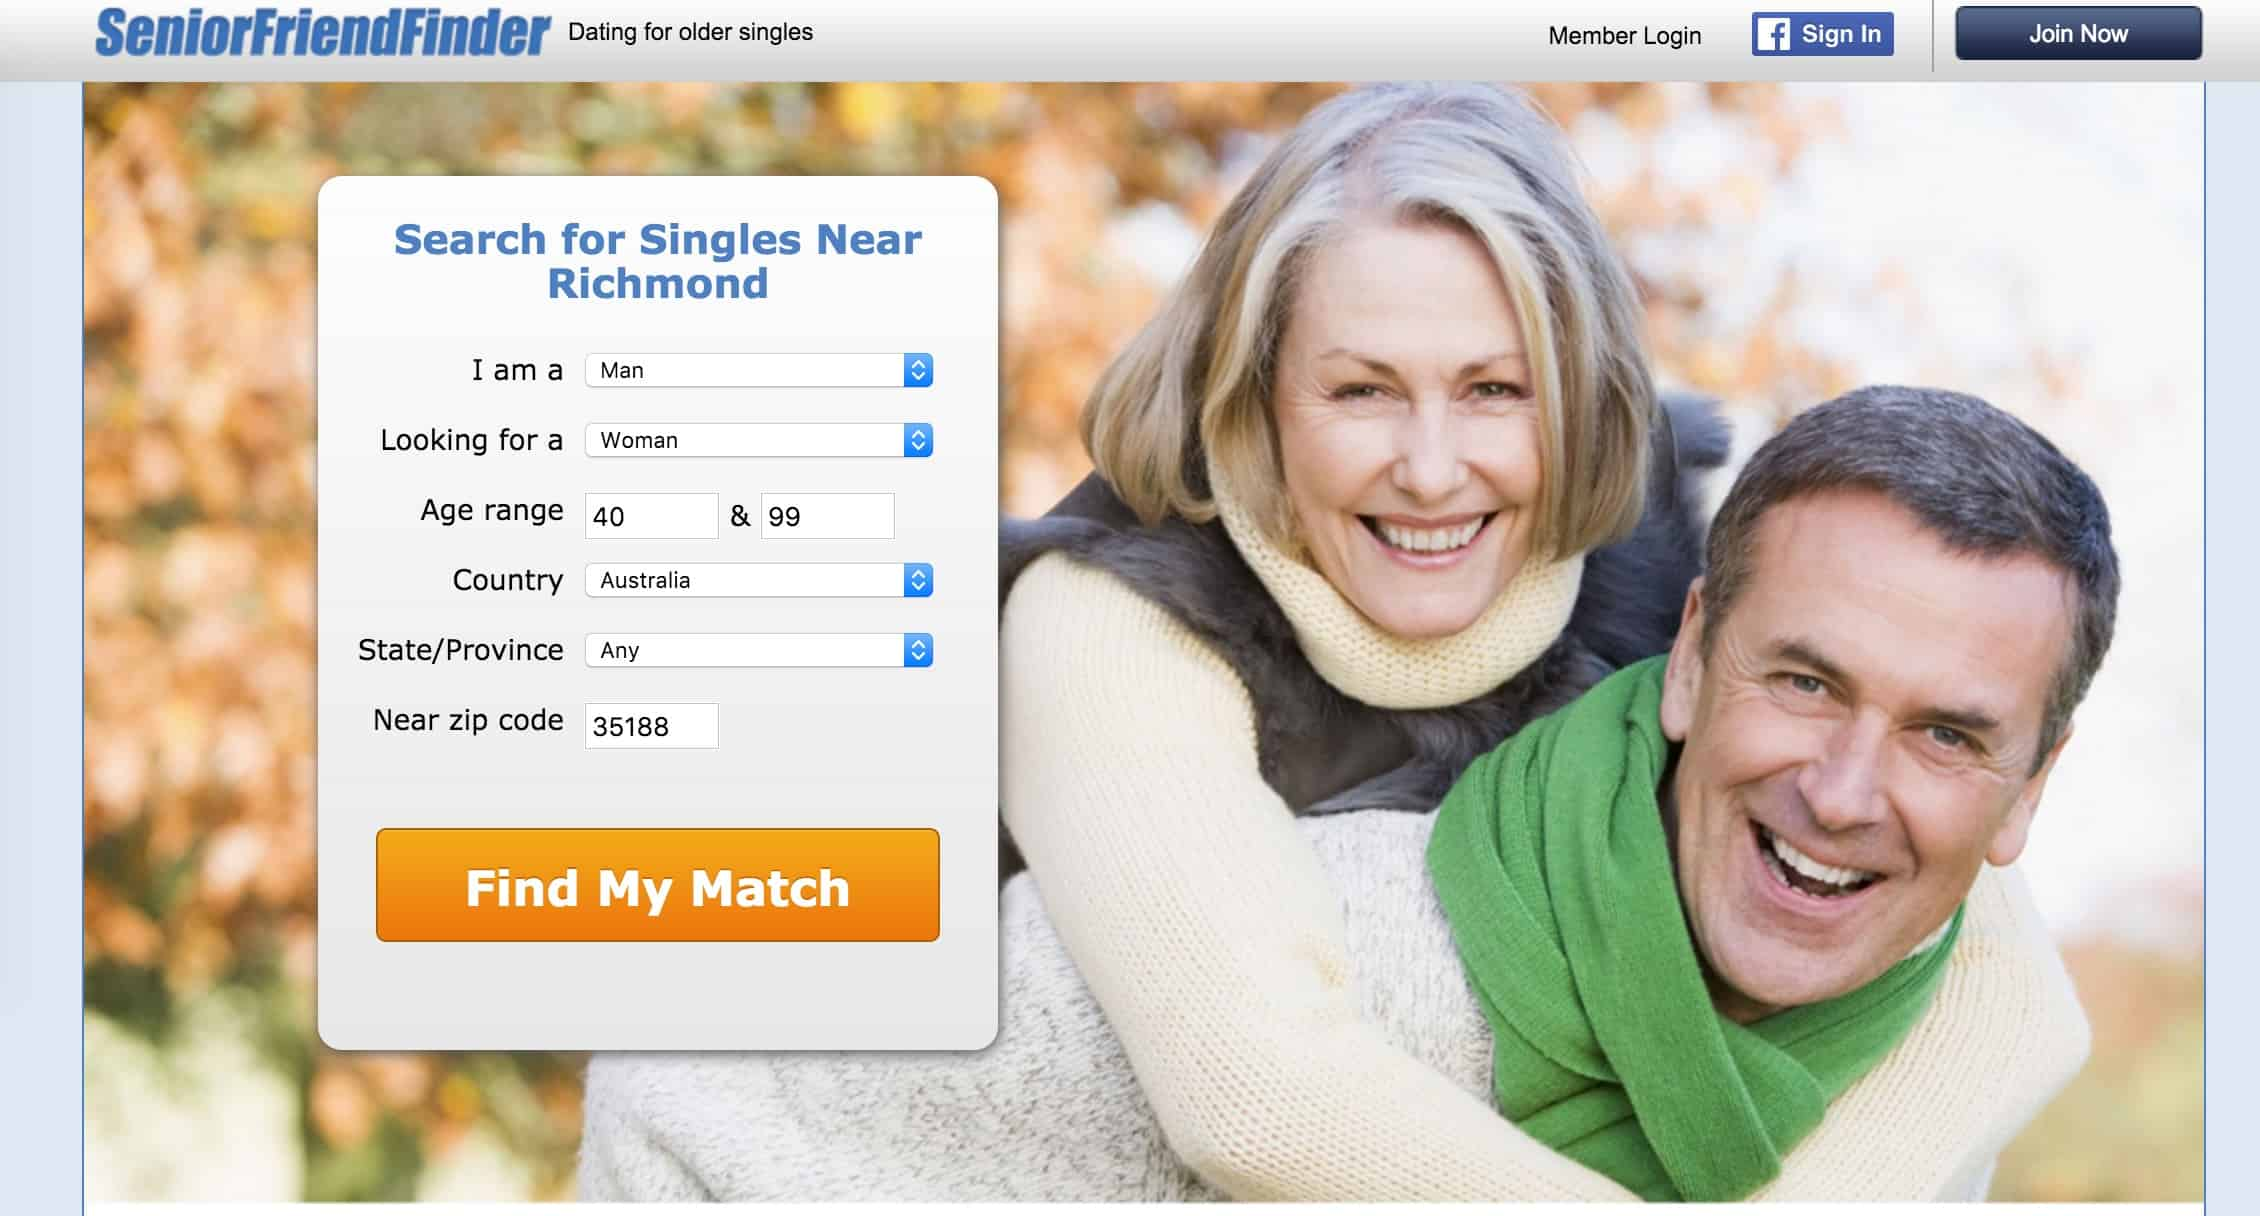 helendale senior dating site Enter a username: (anonymous, no spaces & must be pg rated) if you have already signed up in order to get all of the functionality of the site.